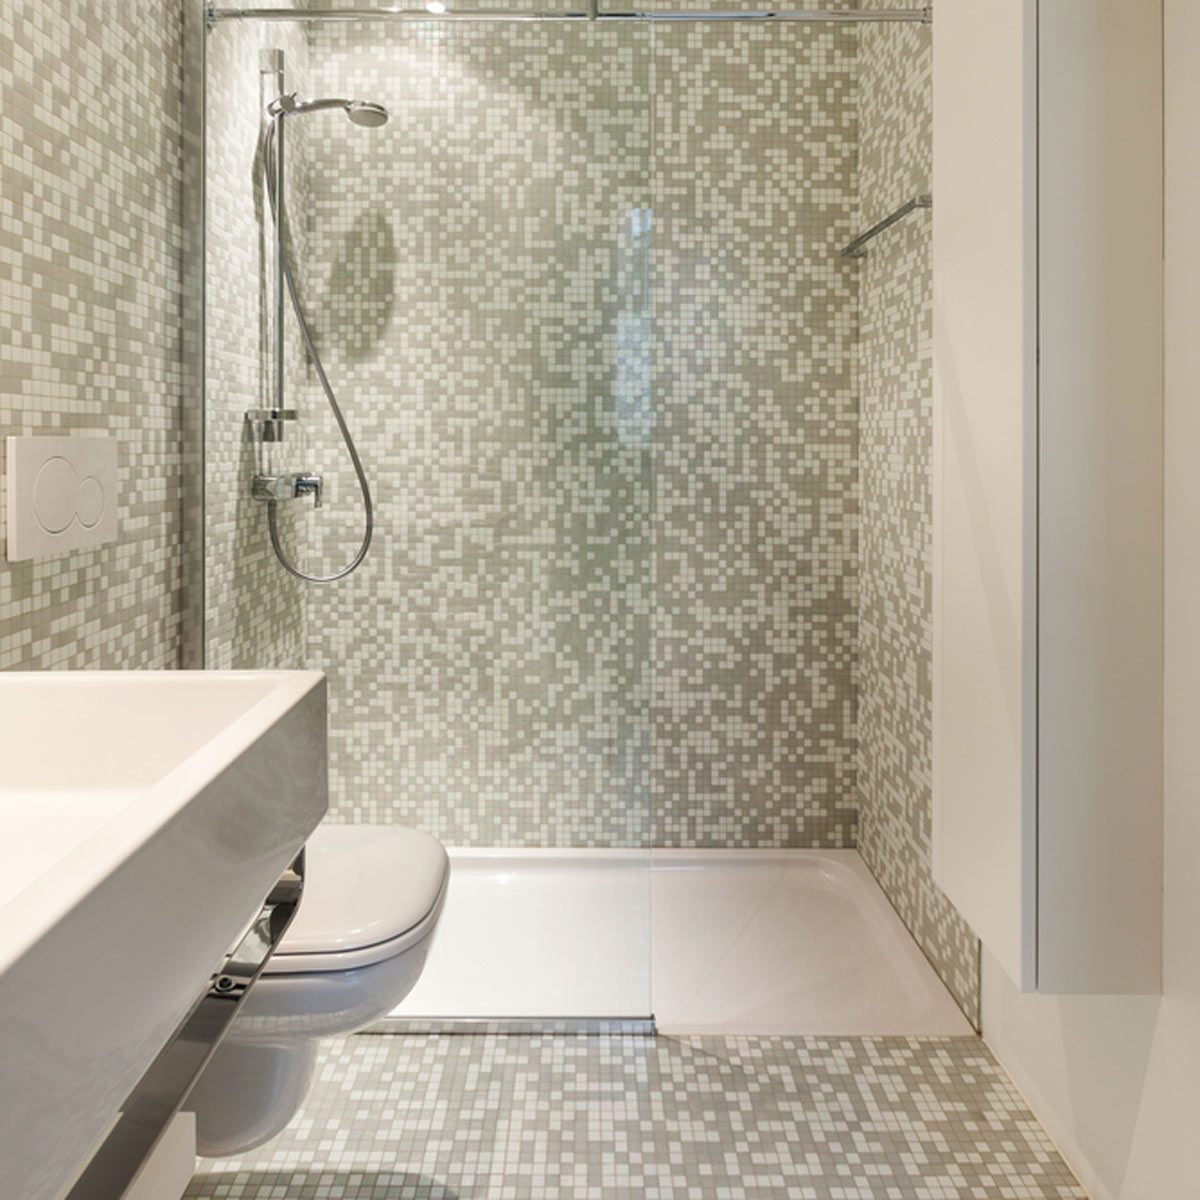 How to make a small bathroom look bigger the family handyman - How to make a small bathroom look larger ...